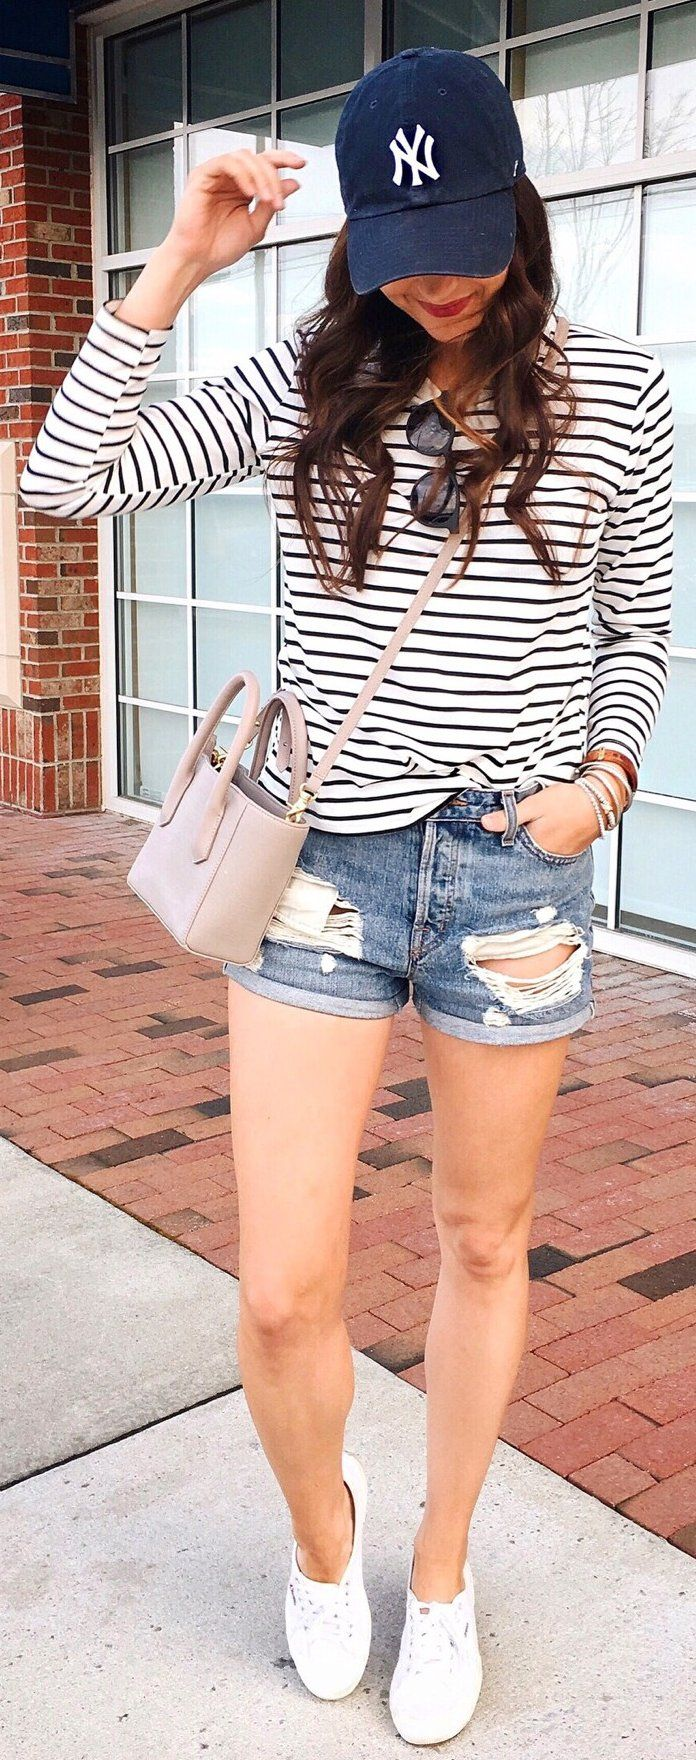 White Striped Top / Ripped Denim Short / White Sneakers / Navy Cap                                                                             Source